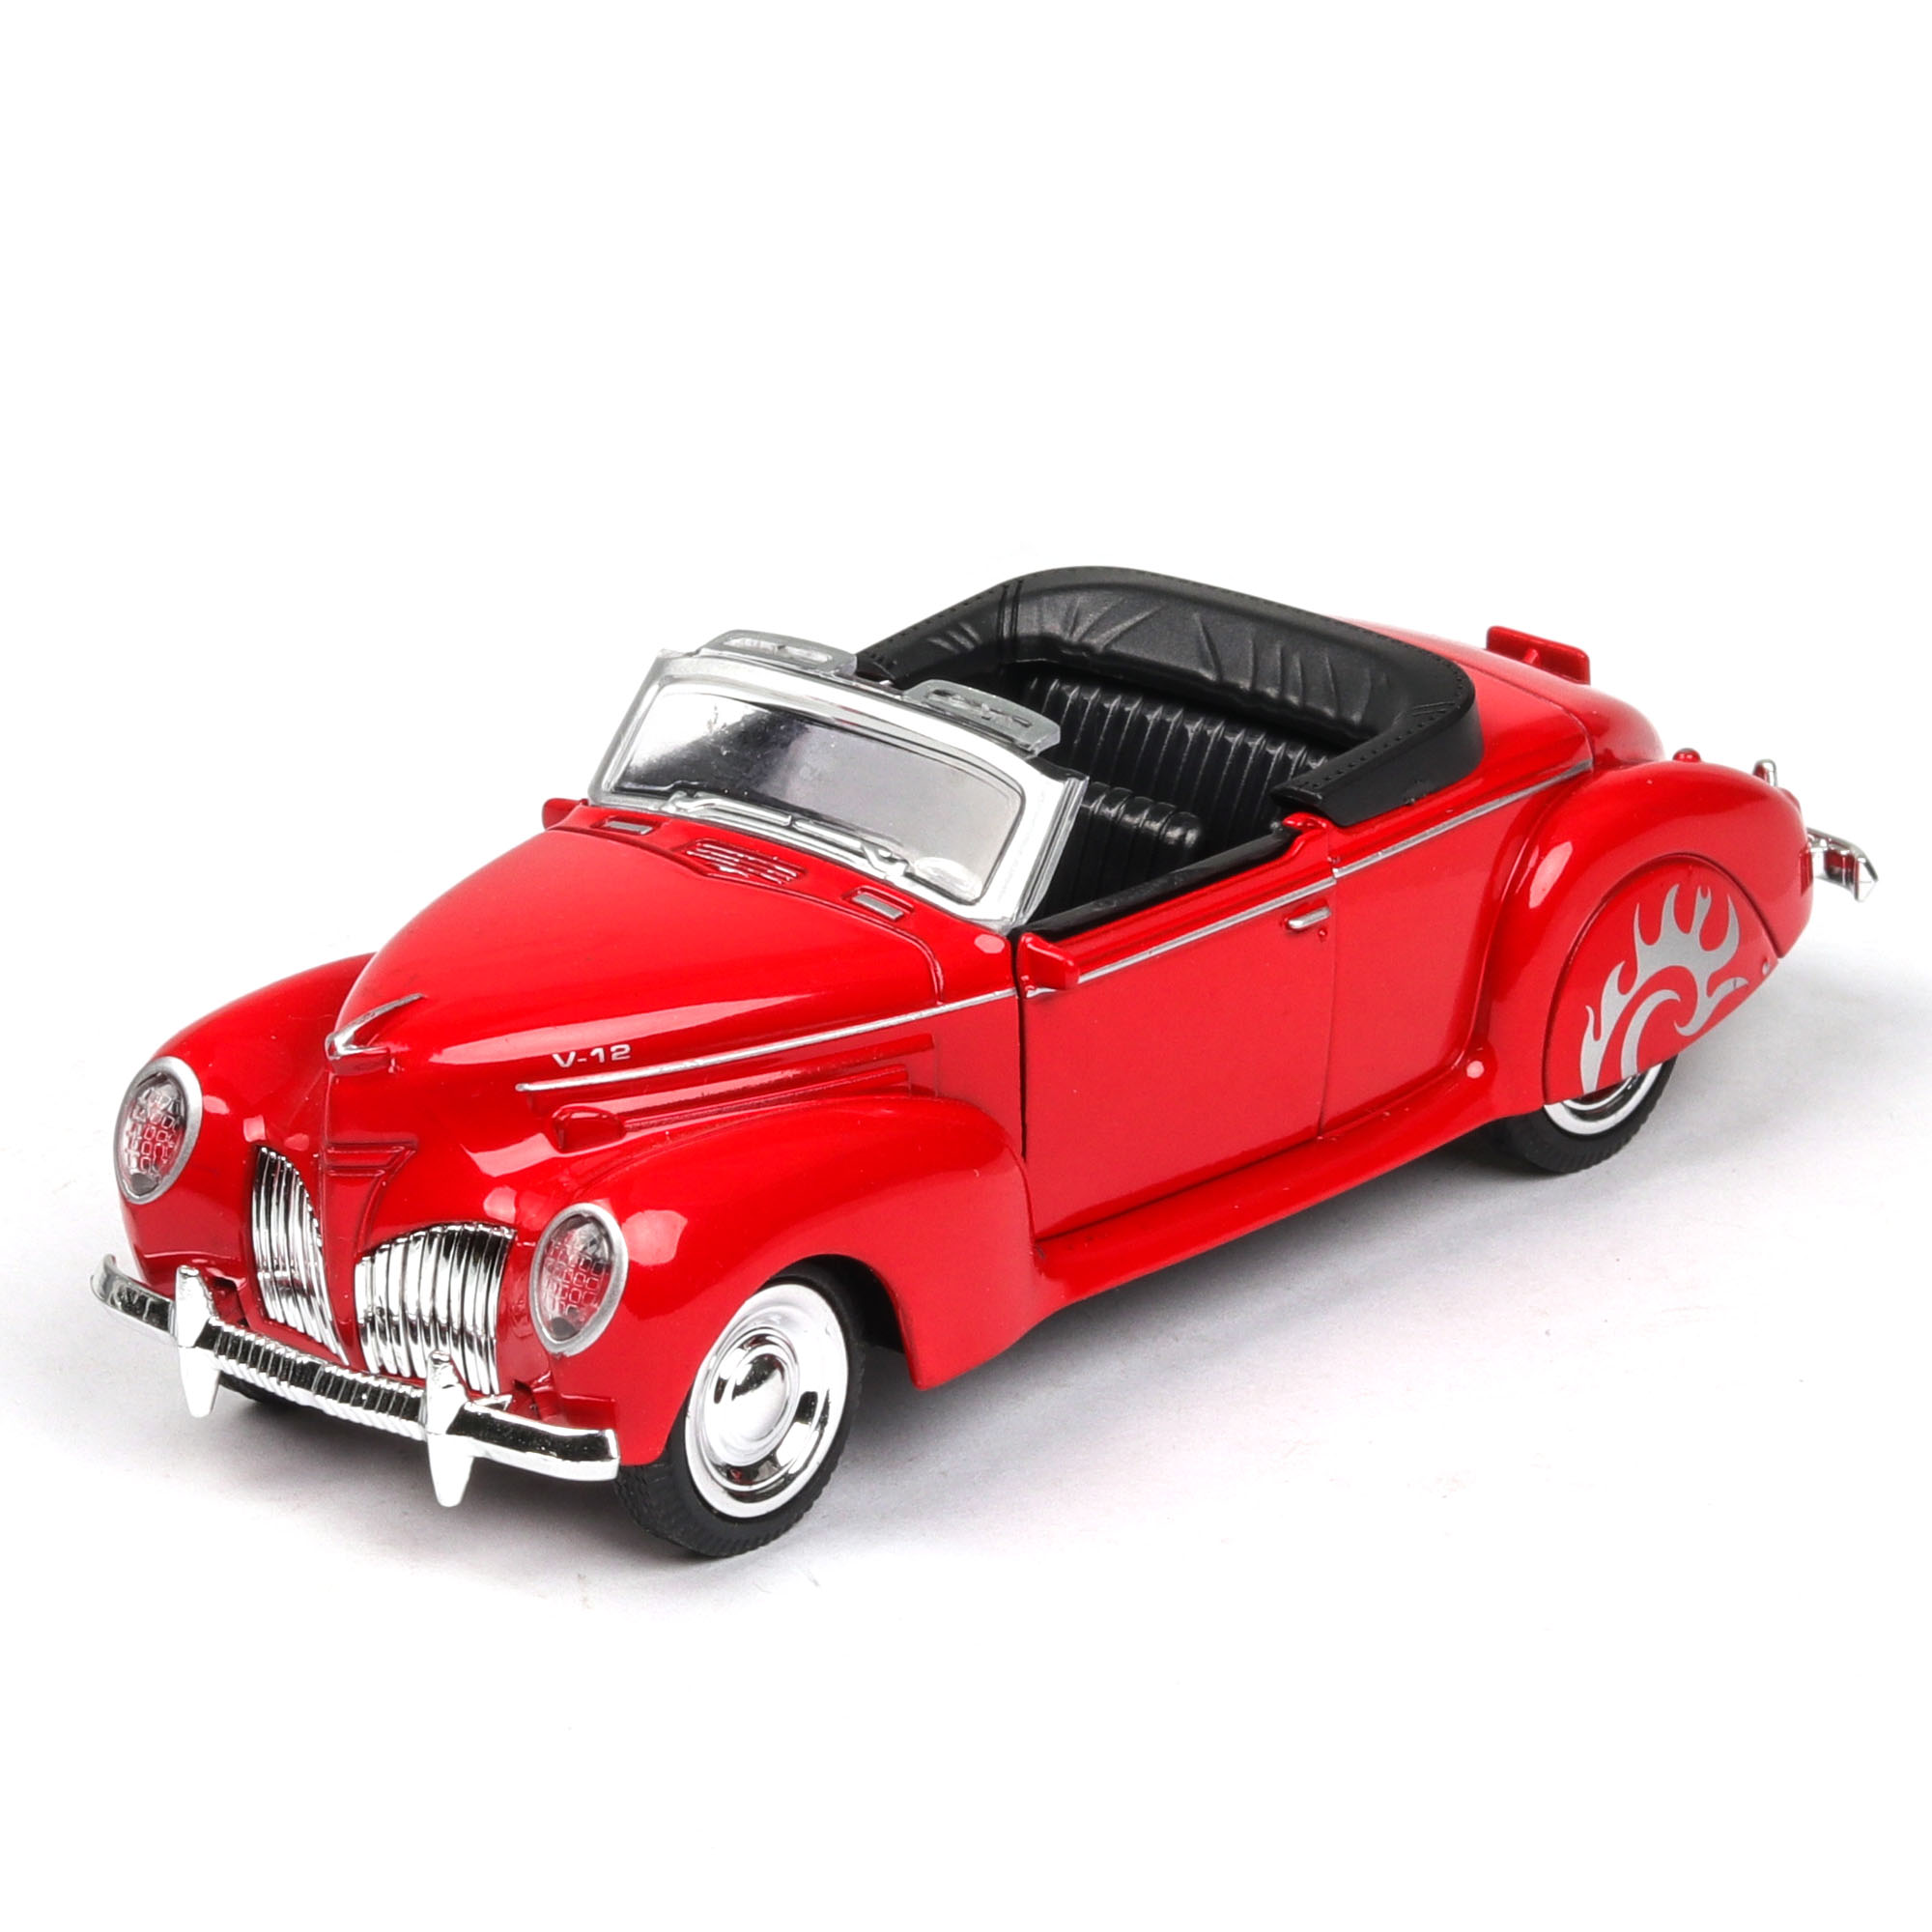 1:38 Classic Lincoln Old Car Diecasts & Toy Vehicles Car Model With Sound&Light Collection Car Toys For Boy Children Gift